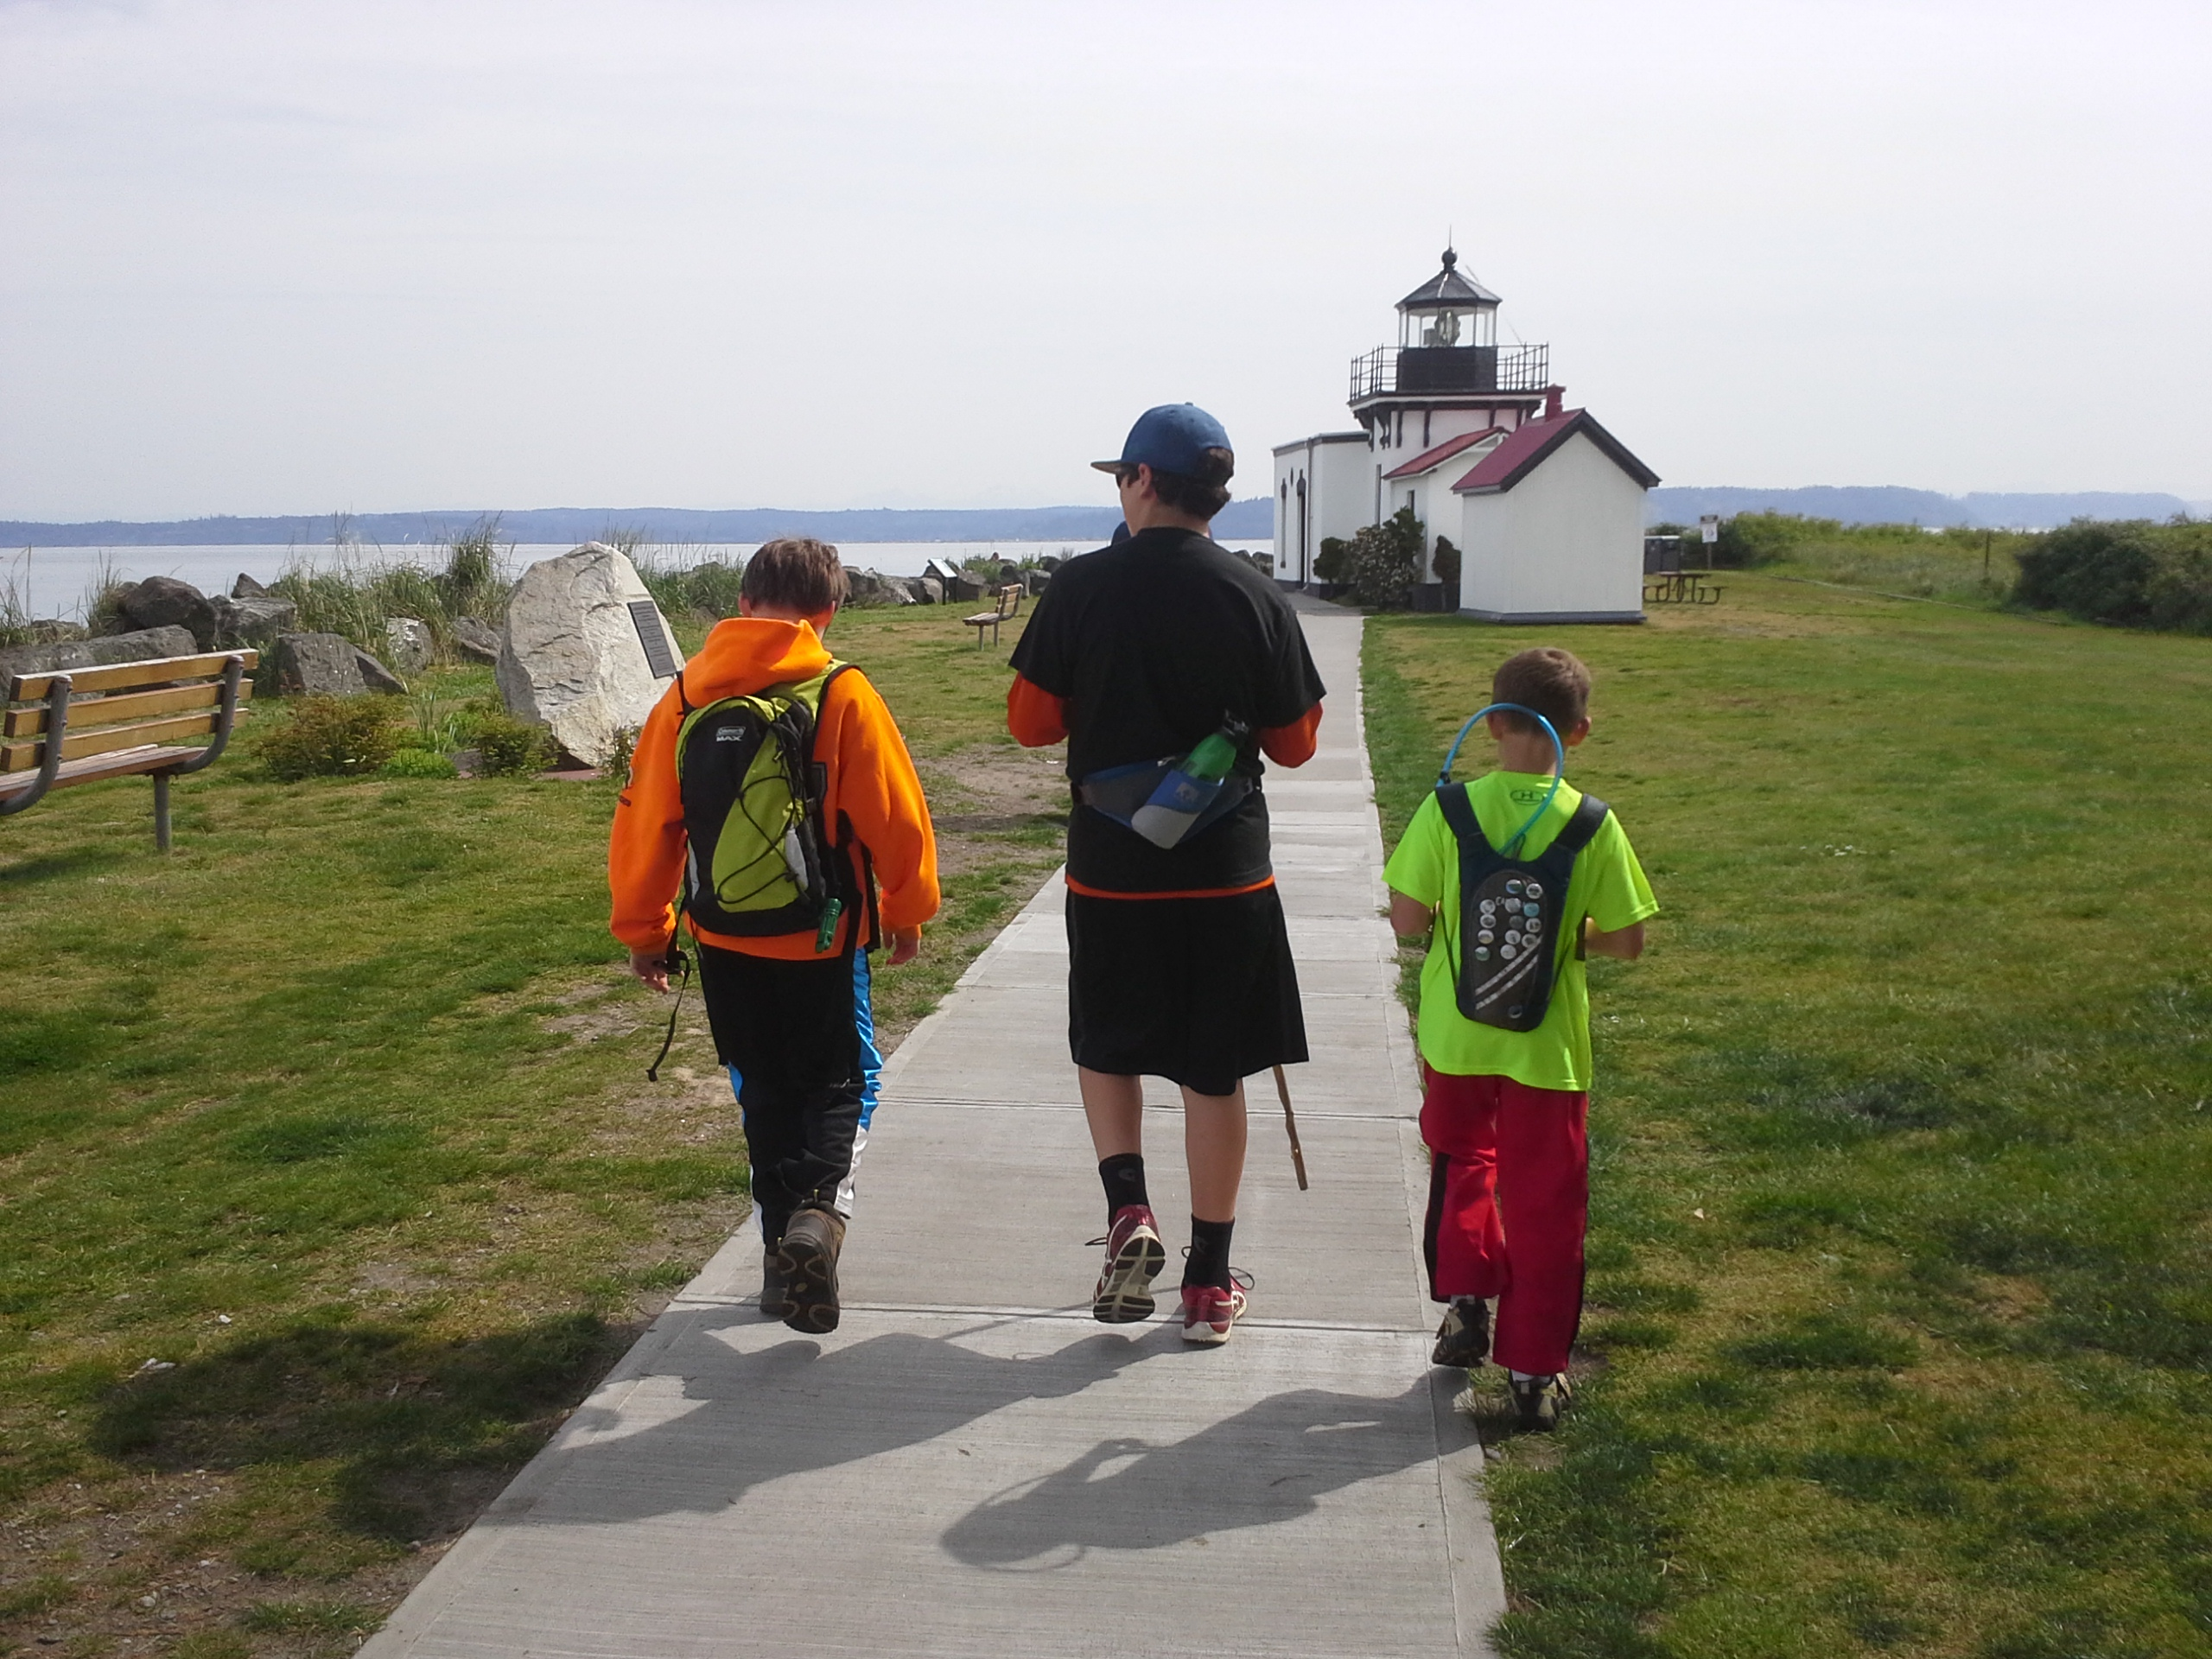 The start of a beautiful Mother's Day hike with friends - this is at Point No Point Lighthouse. 11K walk through the Hansville Greenway. From L to R: Sam, Adam, Ben.